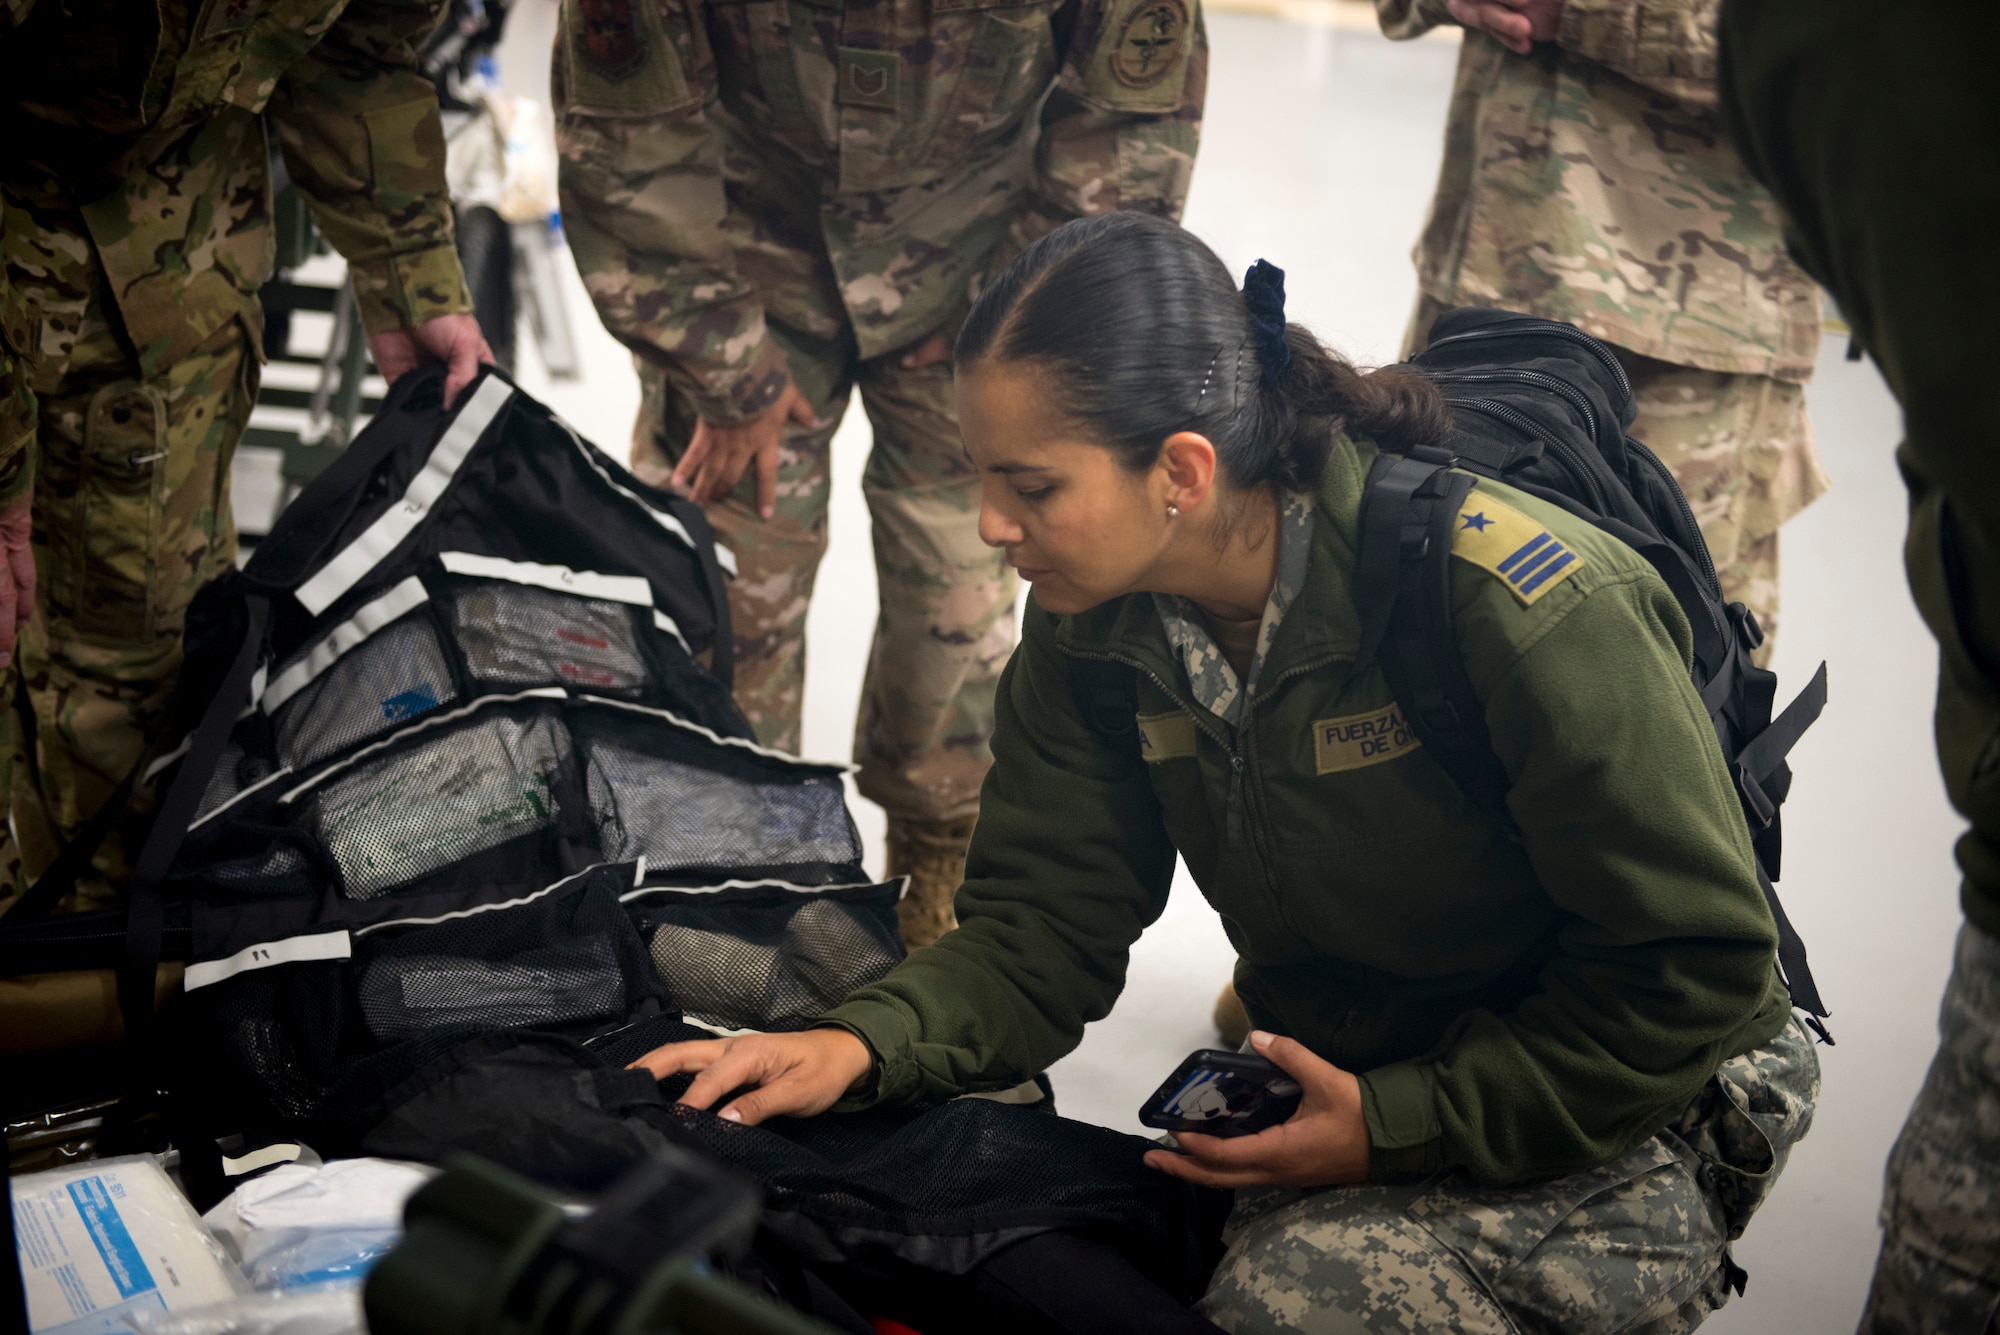 Chilean Air Force Capt. Vivian Leiva, medical health officer, looks through a bag of medical supplies used on Critical Care Air Transport missions on Dec. 7, at Camp Bramble on Joint Base San Antonio-Lackland, Texas. Each CCAT Team carries roughly 560 pounds of gear, enough to continue the level of acute care for three critically ill patients up to 24-hours. (U.S. Air Force photo by Kiley Dougherty)